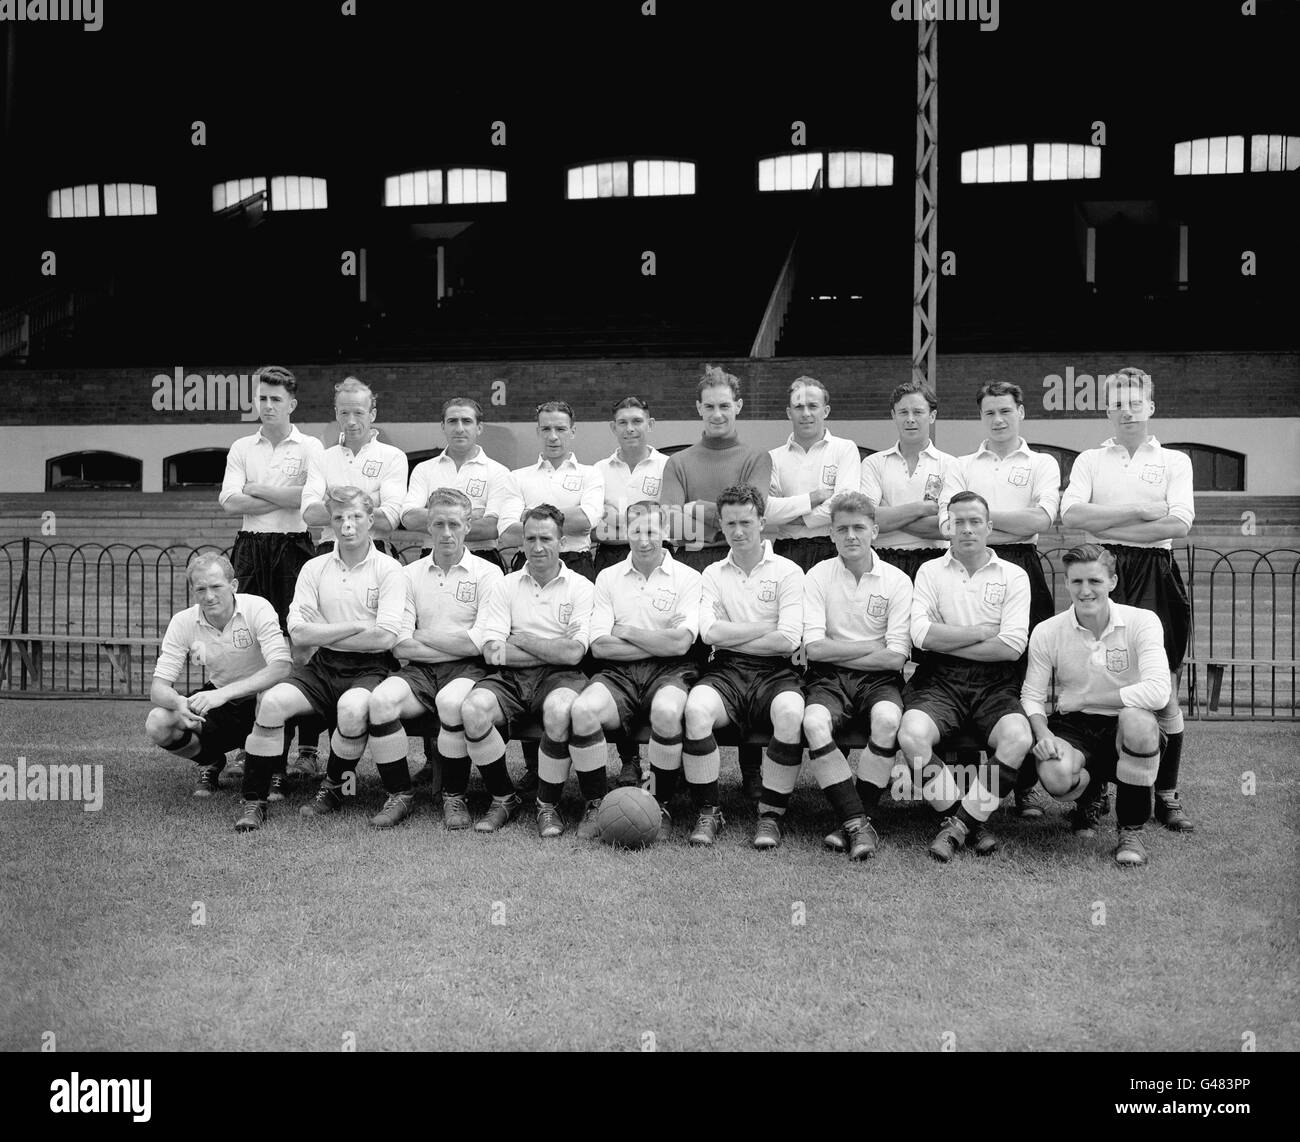 Soccer - League Division Two - Fulham Photocall - Craven Cottage - Stock Image